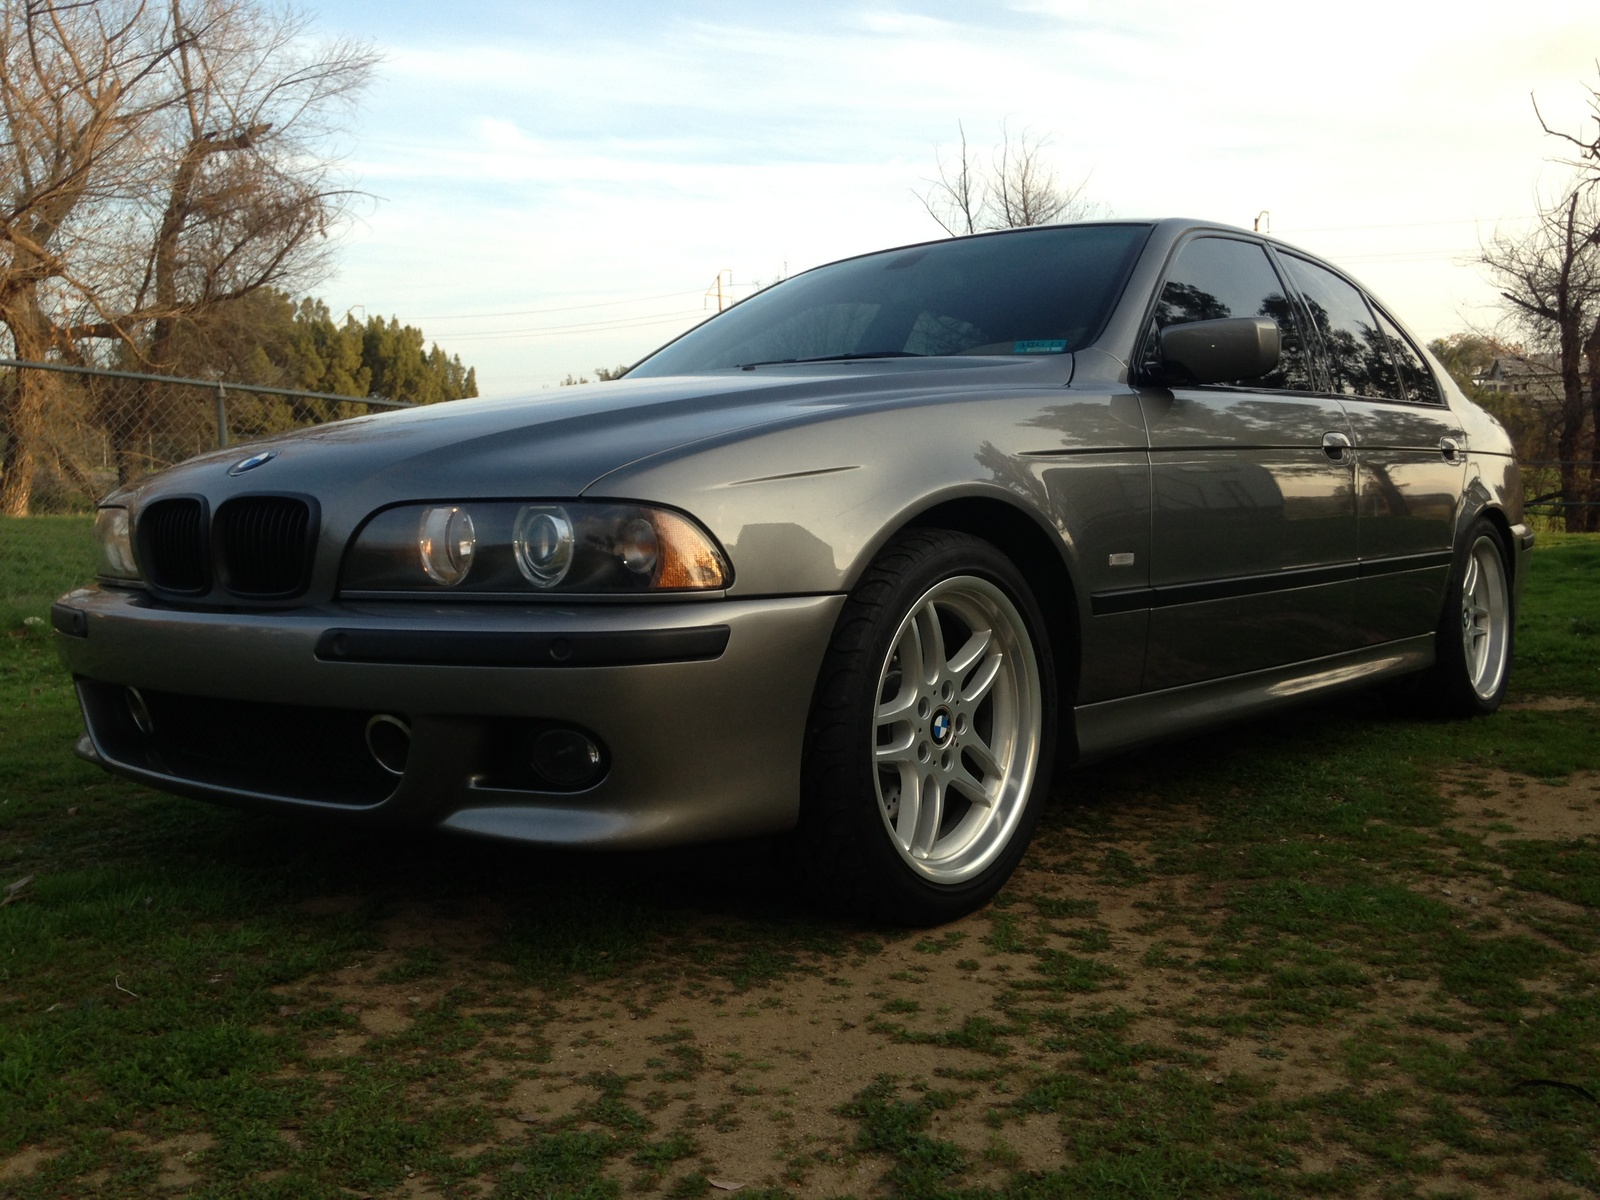 BMW 5 series 530xd 2003 photo - 7